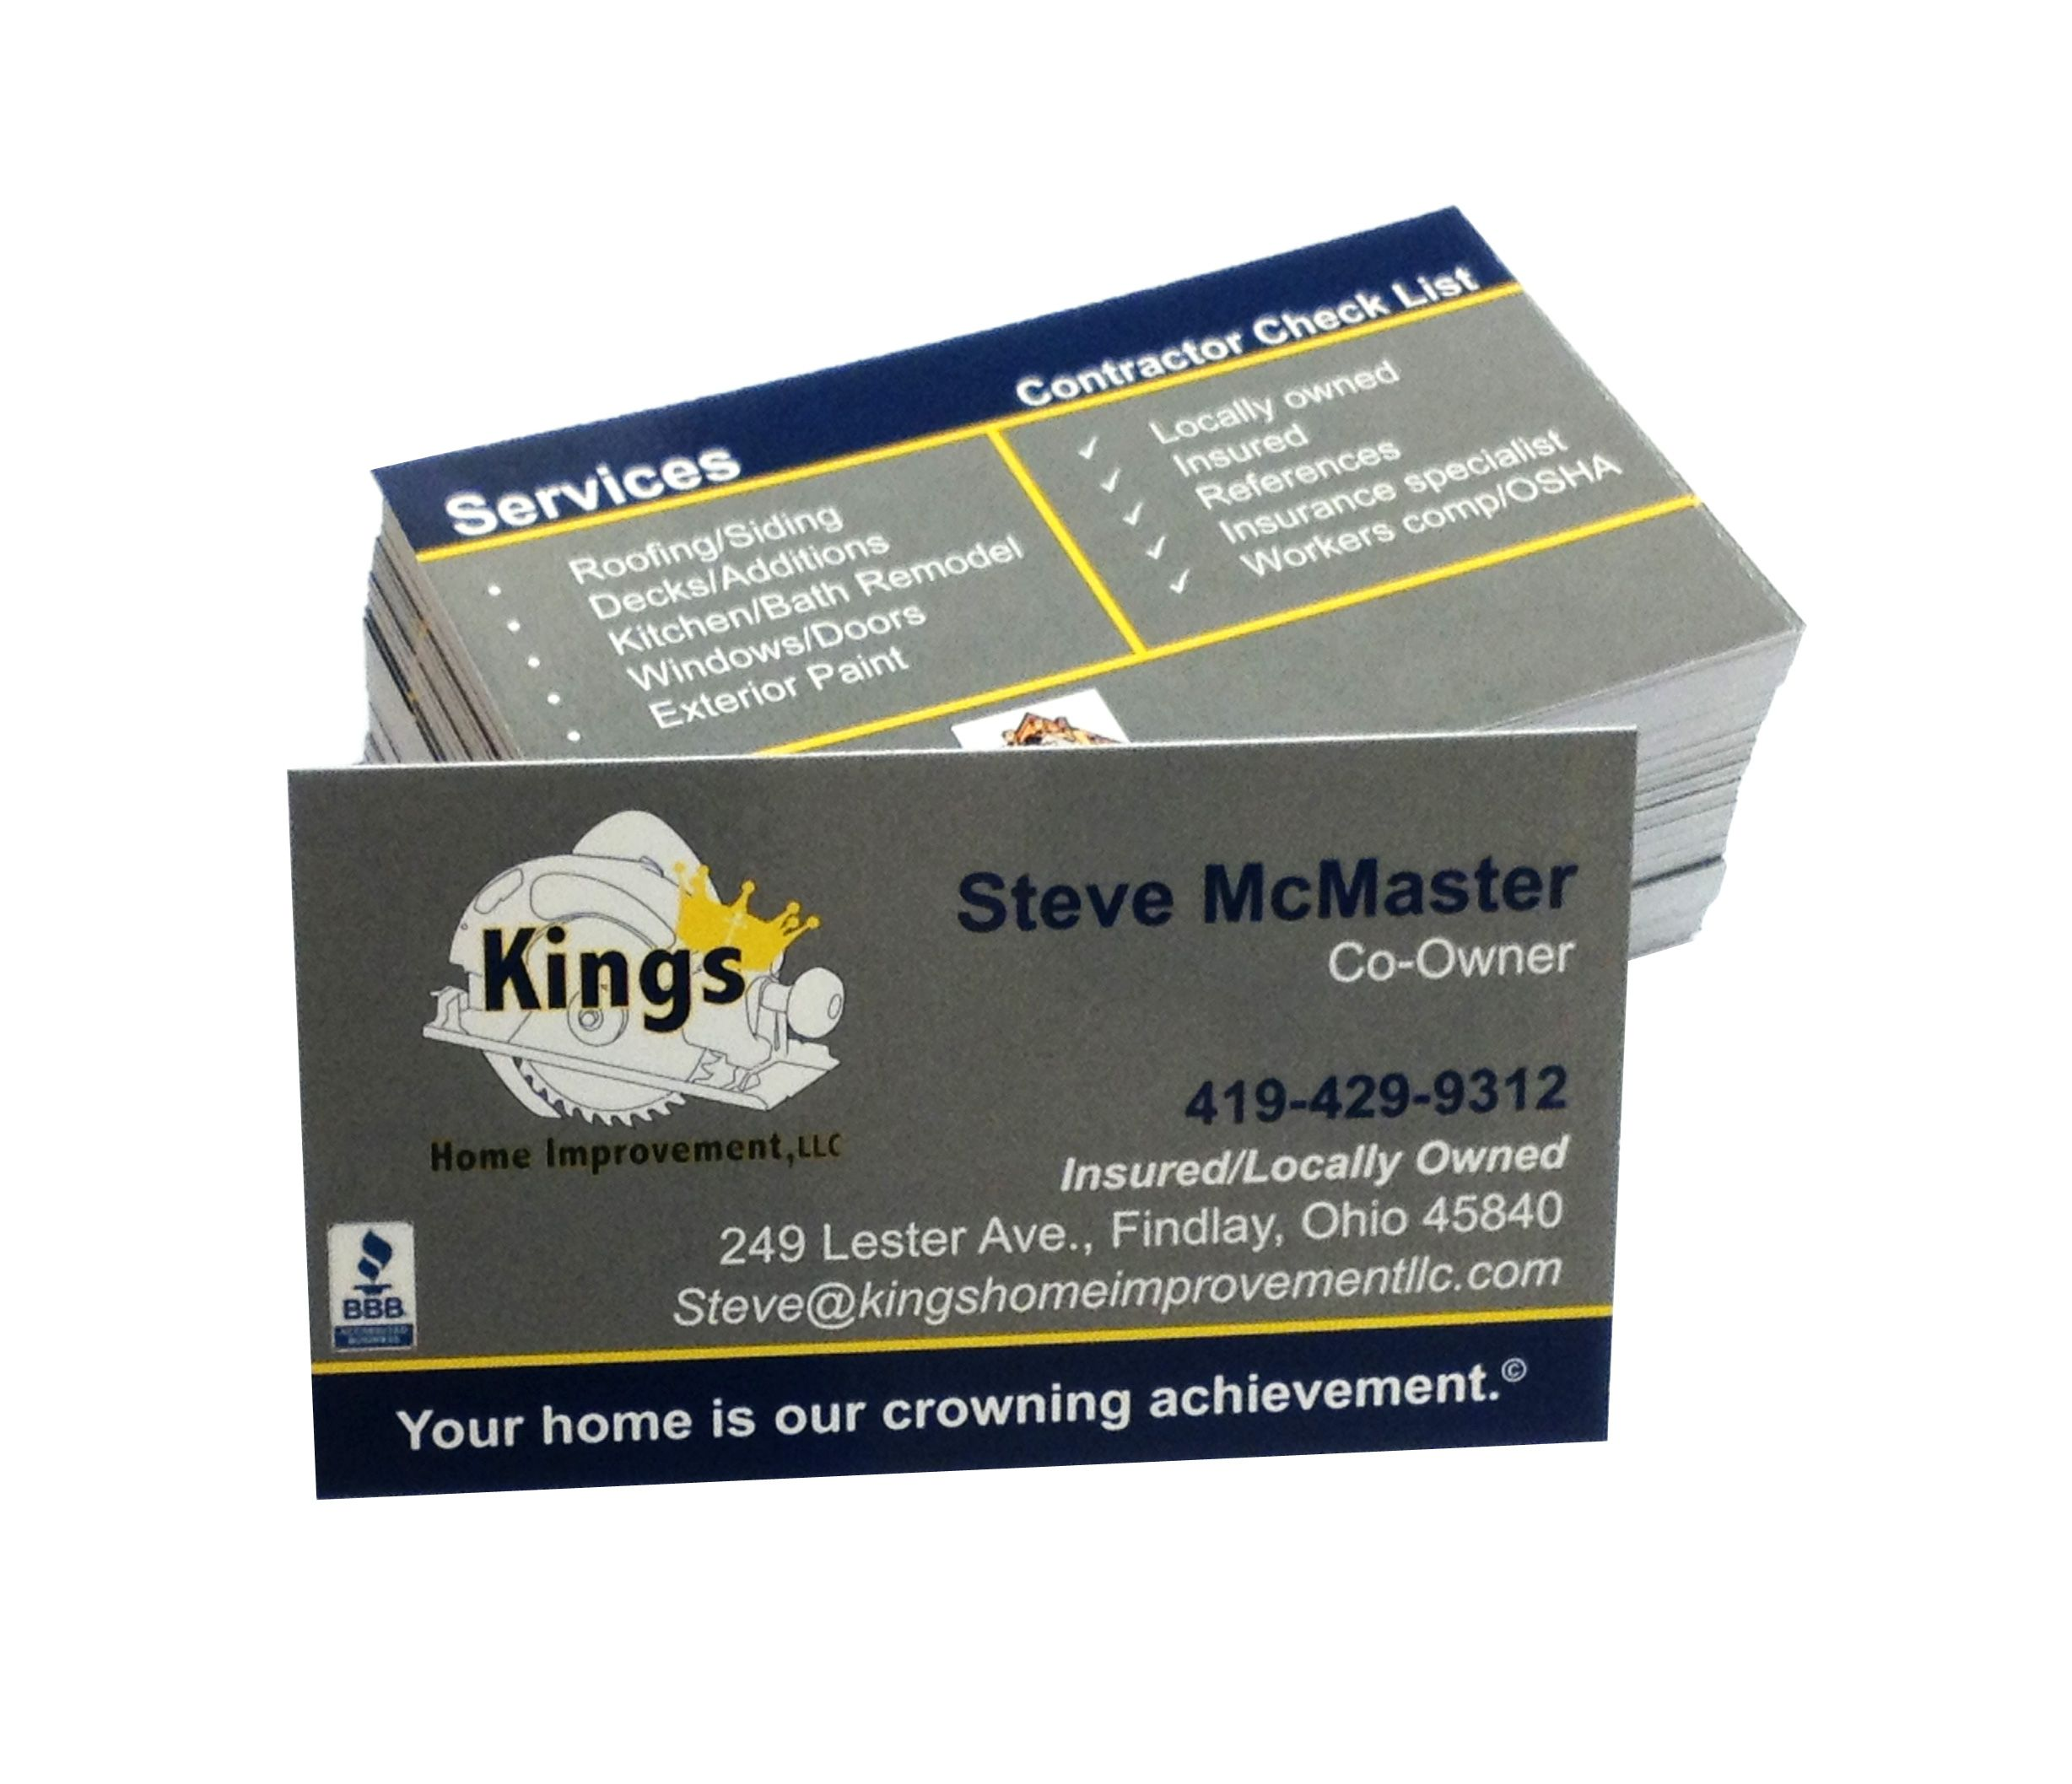 King s Home Improvement had a challenge for us with lots of